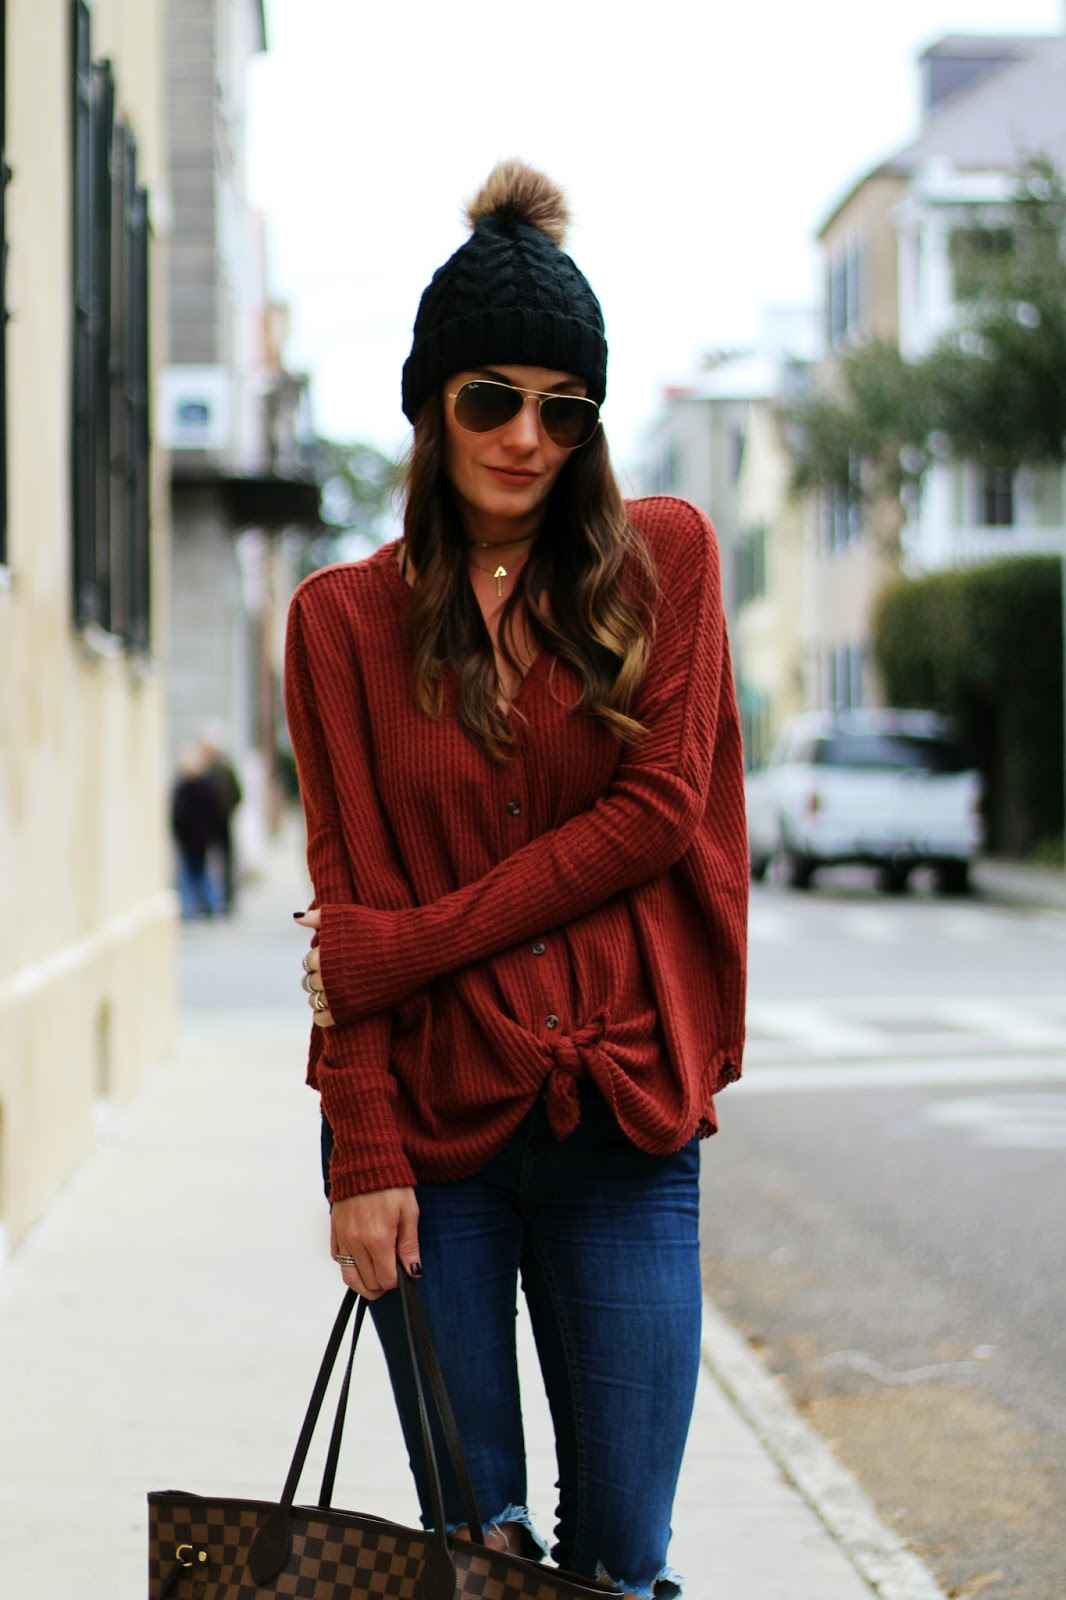 Cozy Thermal Outfit